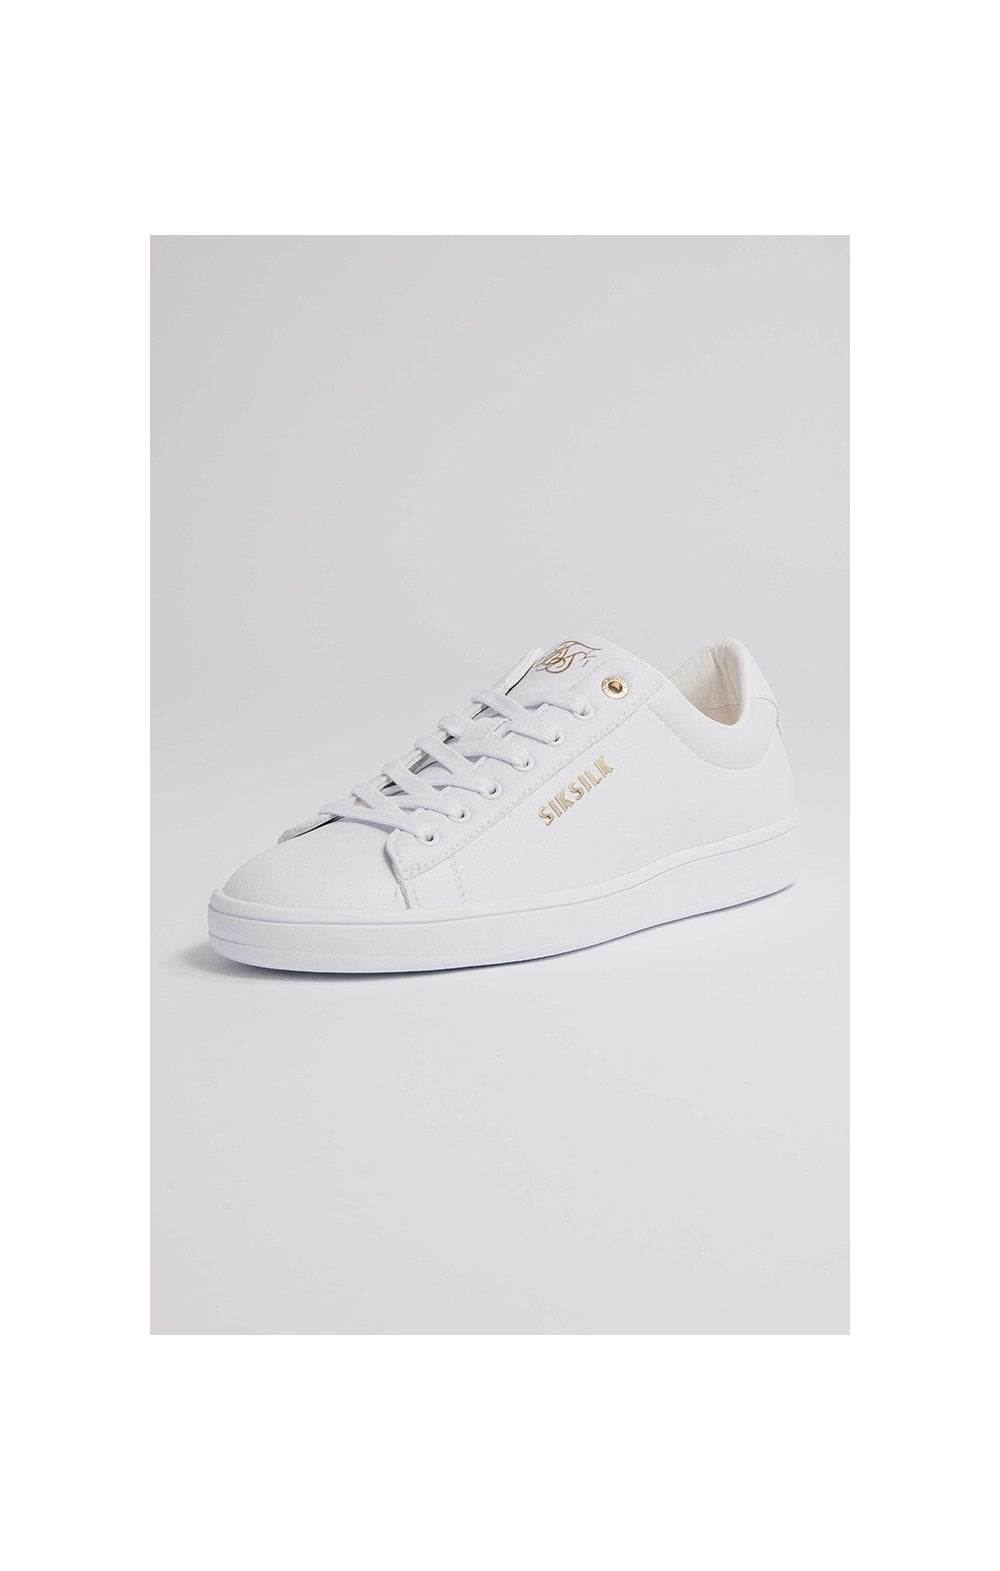 SikSilk Elite - White Patent